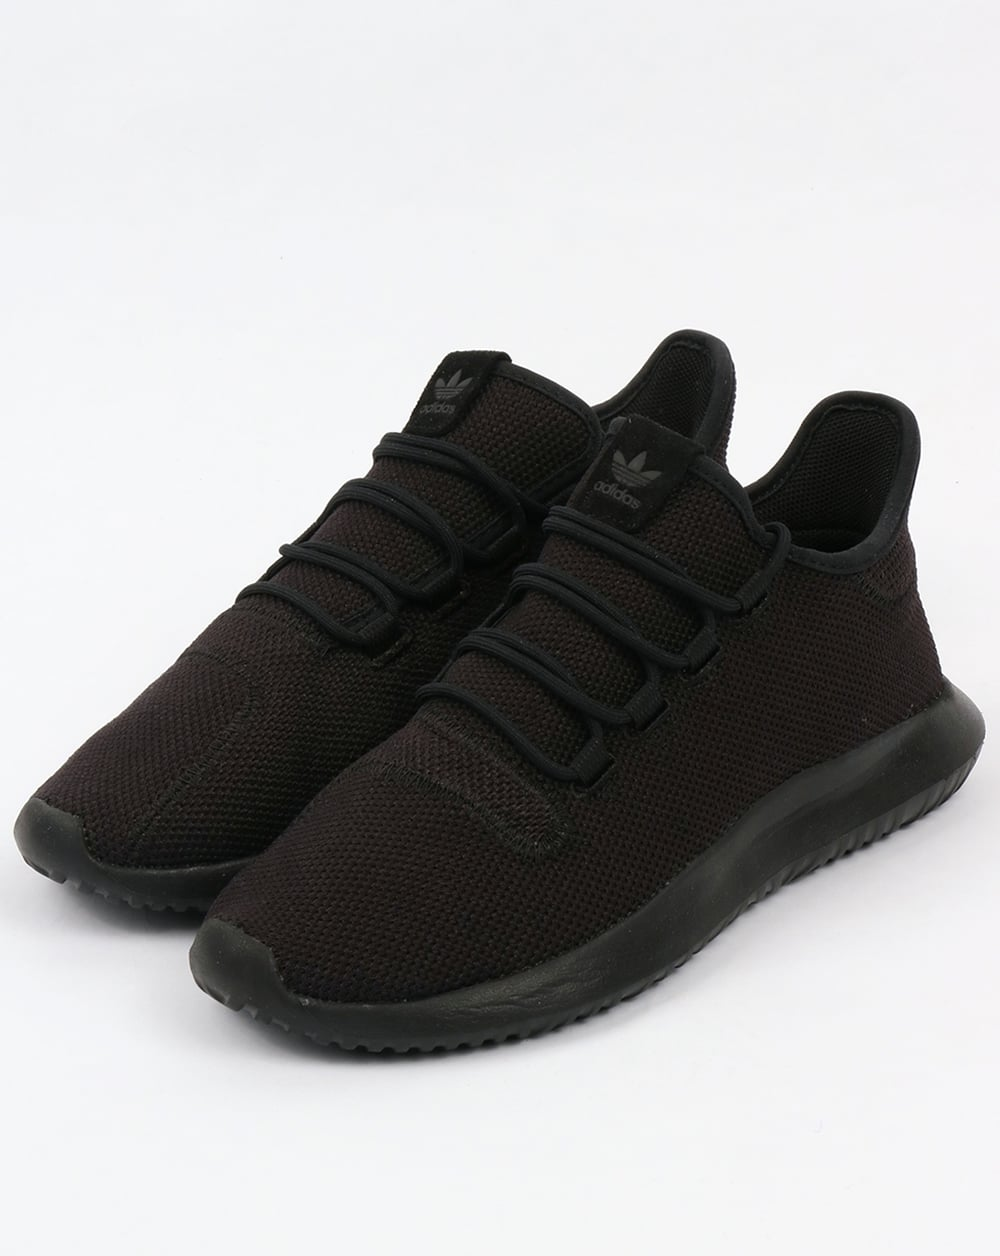 adidas Trainers Adidas Tubular Shadow Trainers Black 7e28f8908